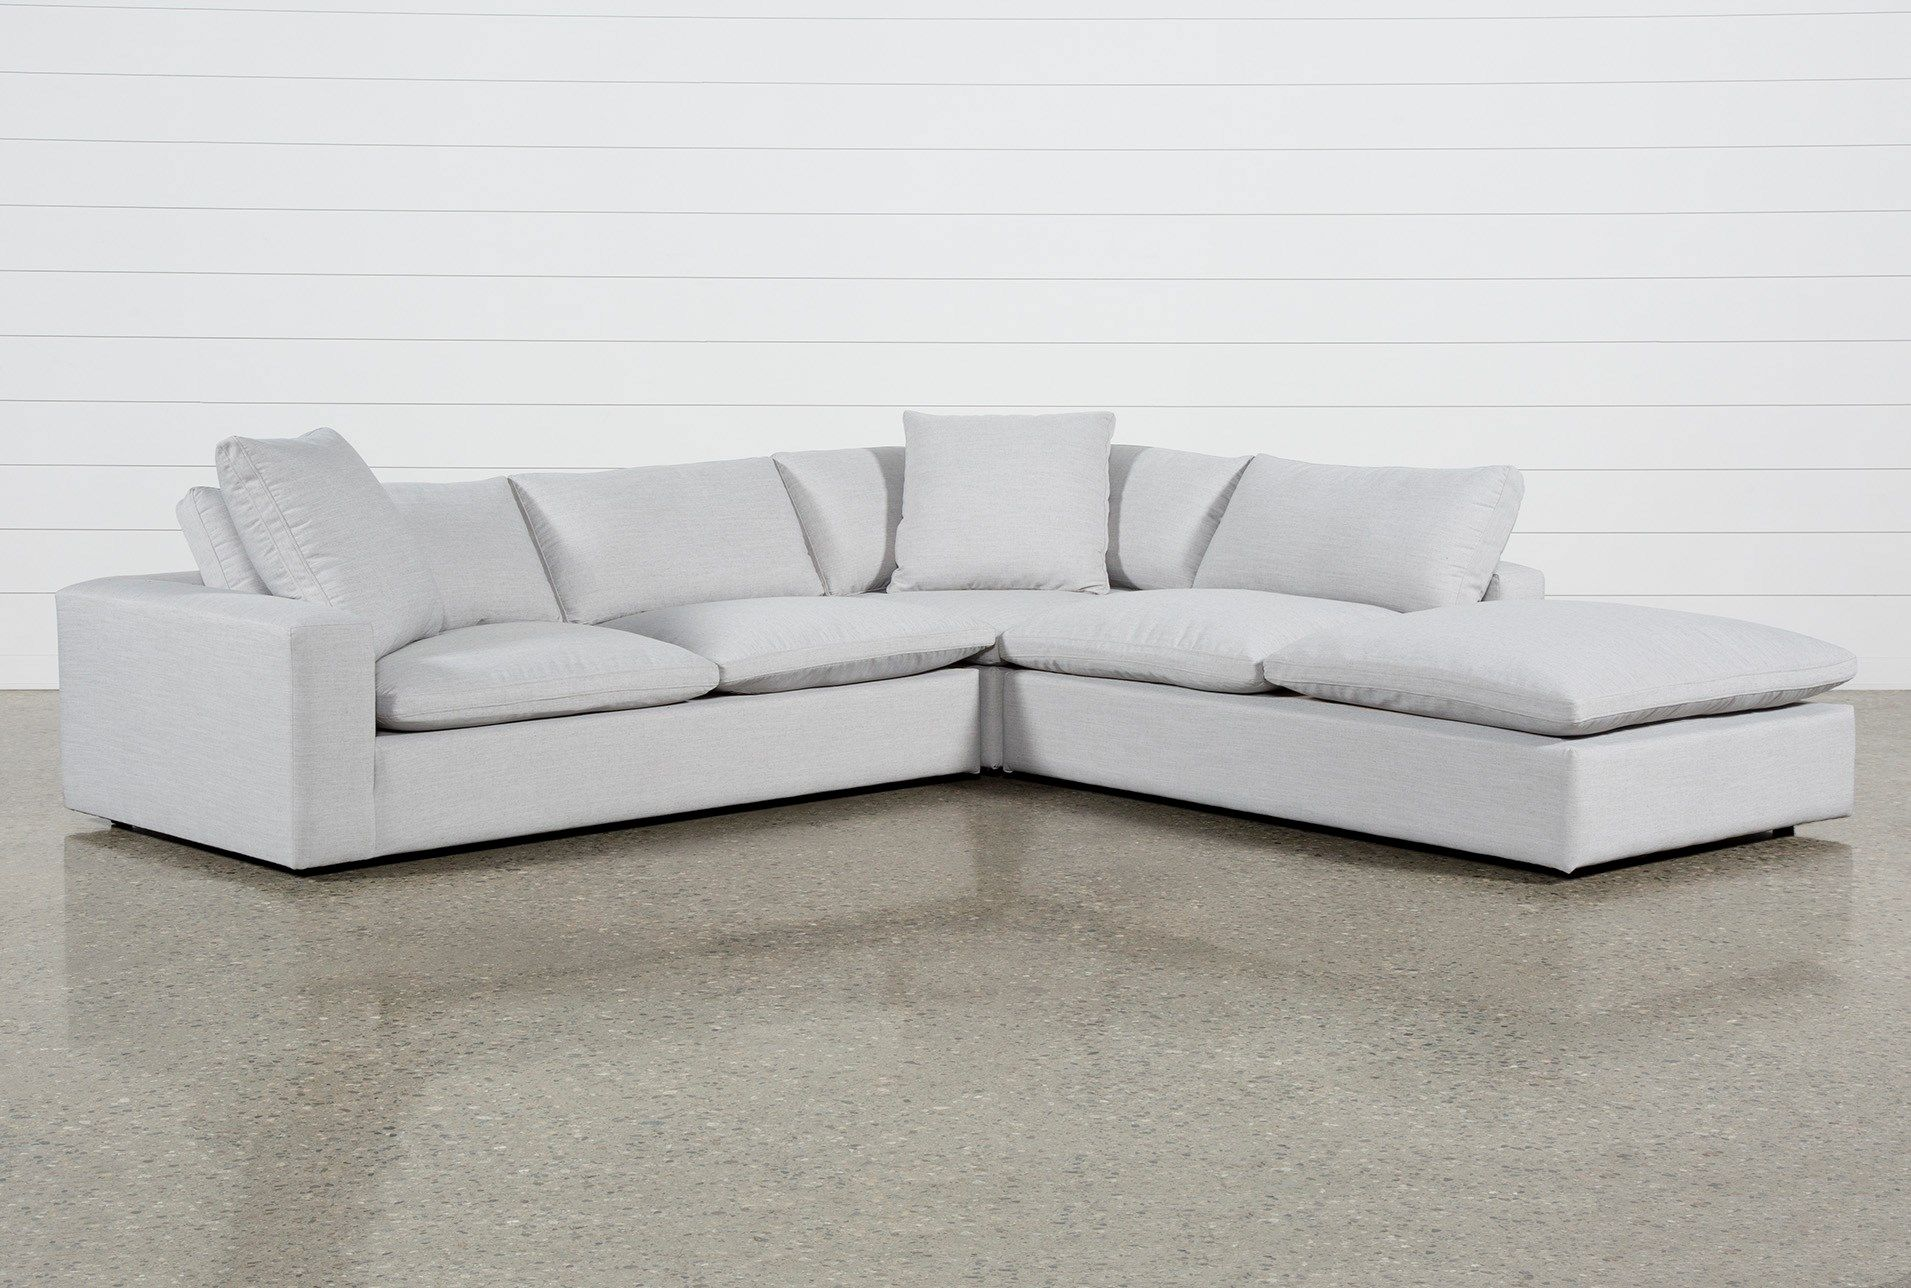 Utopia 3 Piece Sectional With Right Facing Bumper Chaise Sectional 3 Piece Sectional Chaise